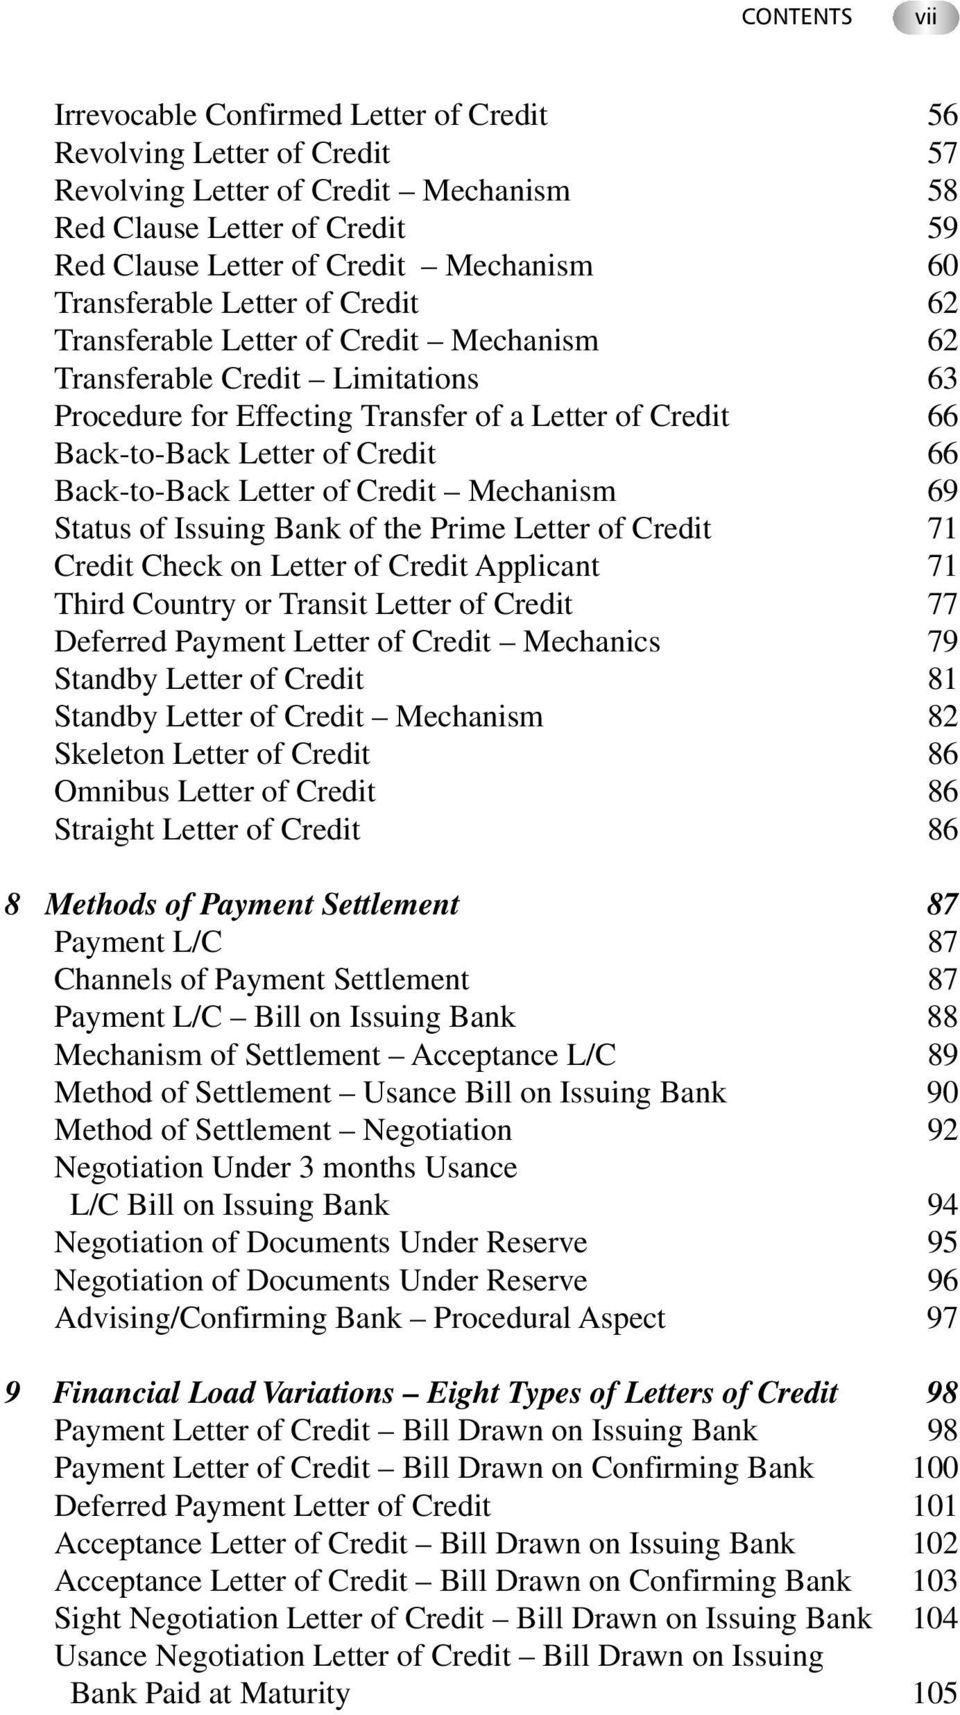 66 Back-to-Back Letter of Credit Mechanism 69 Status of Issuing Bank of the Prime Letter of Credit 71 Credit Check on Letter of Credit Applicant 71 Third Country or Transit Letter of Credit 77